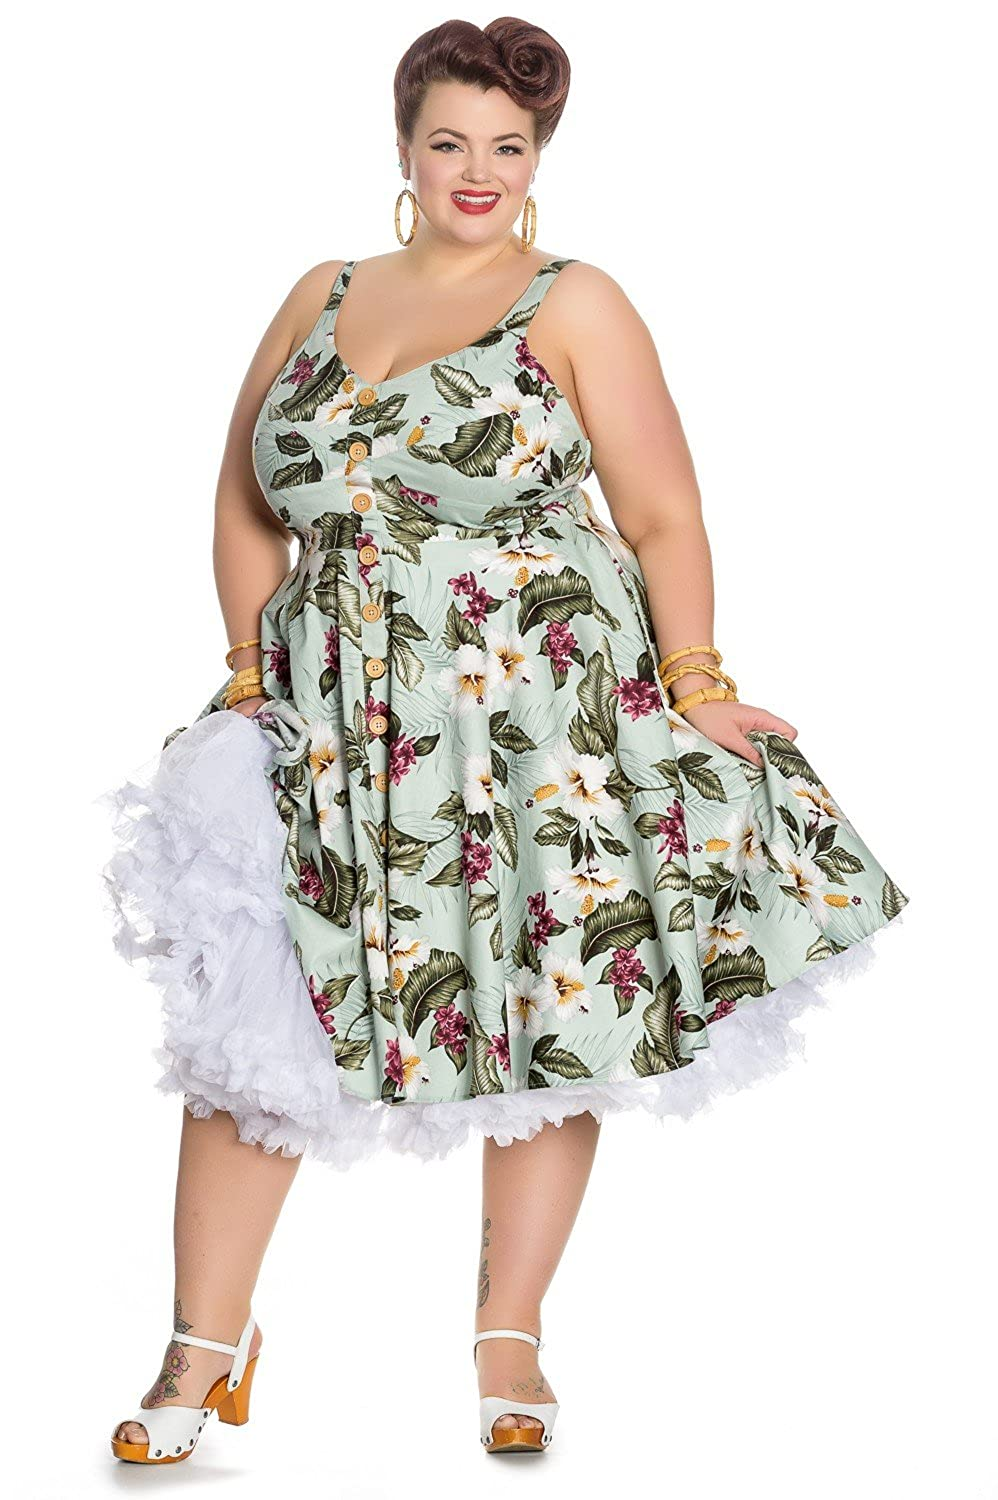 New Fifties Dresses | 50s Inspired Dresses Hell Bunny Tahiti Tropical Floral 50s Vintage Rockabilly Flare Swing Party Dress $61.99 AT vintagedancer.com